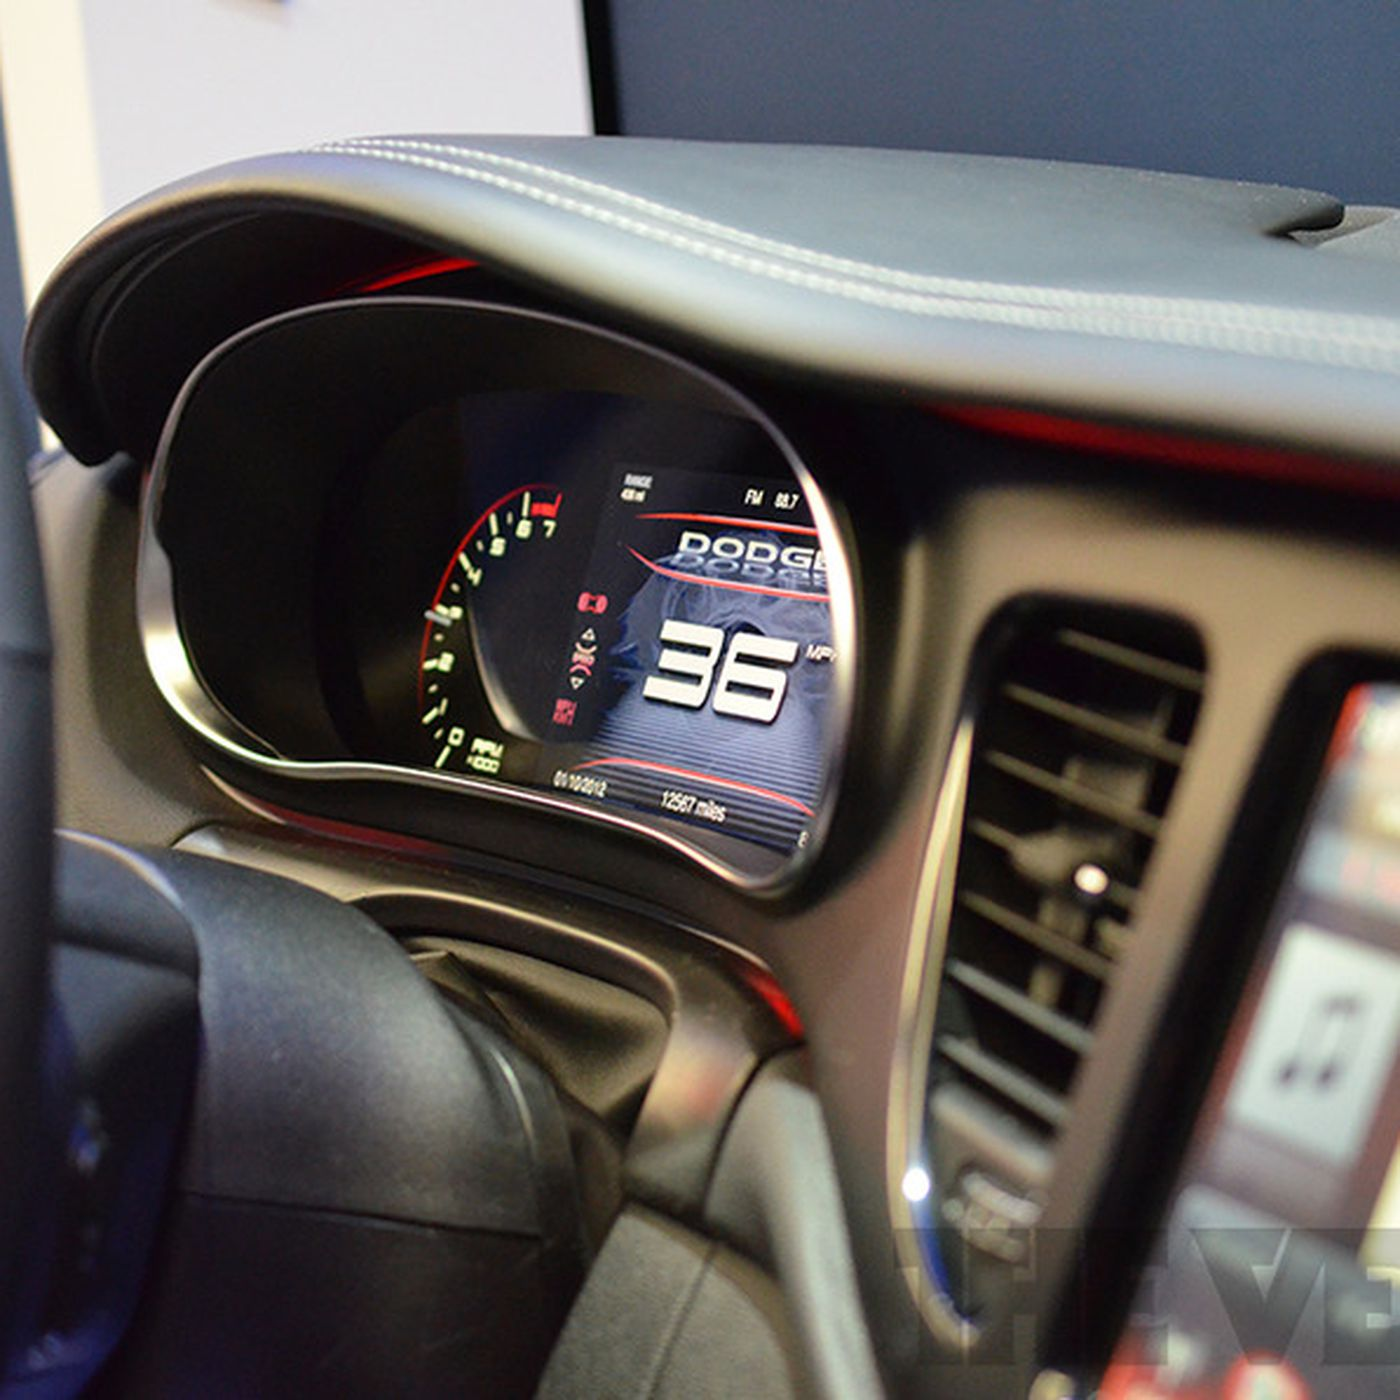 The 2013 Dodge Dart s new digital dashboard hands on photos The